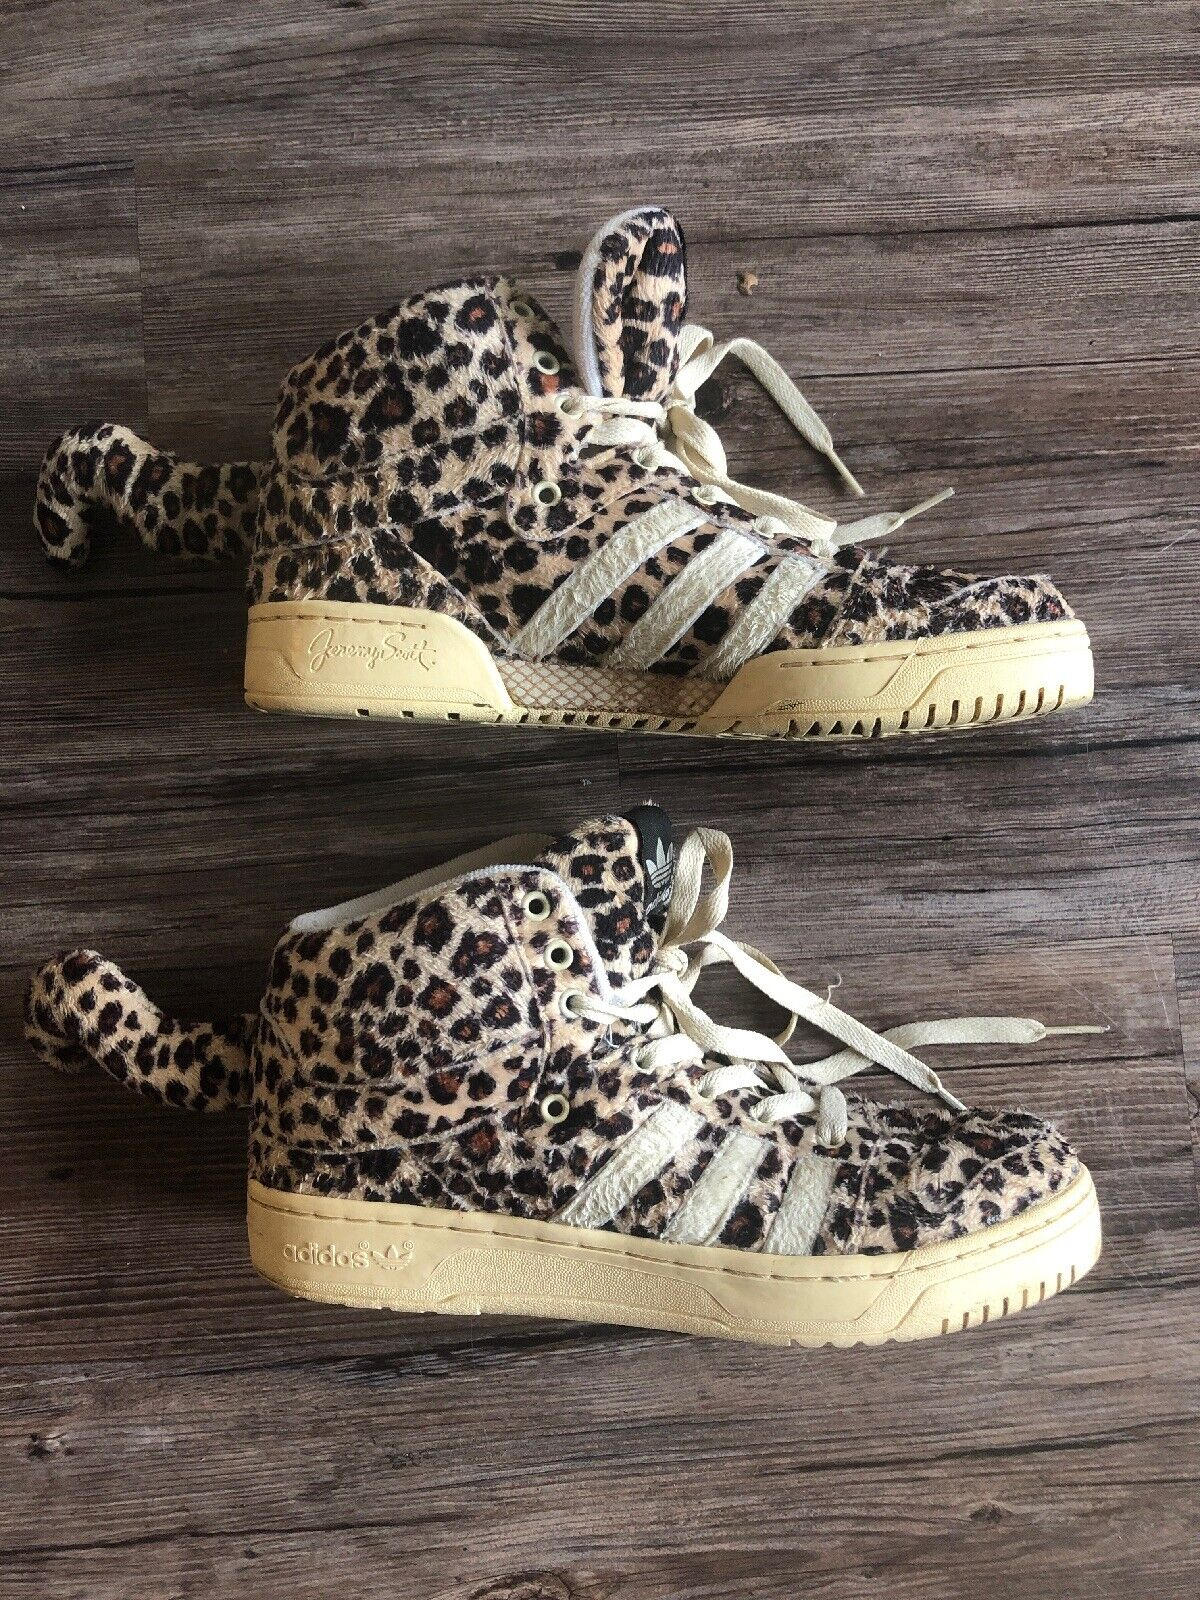 Mens Size 7.5 Adidas Originals Jeremy Scott JS LEOPARDS V24536 Rare Cheetah Tail